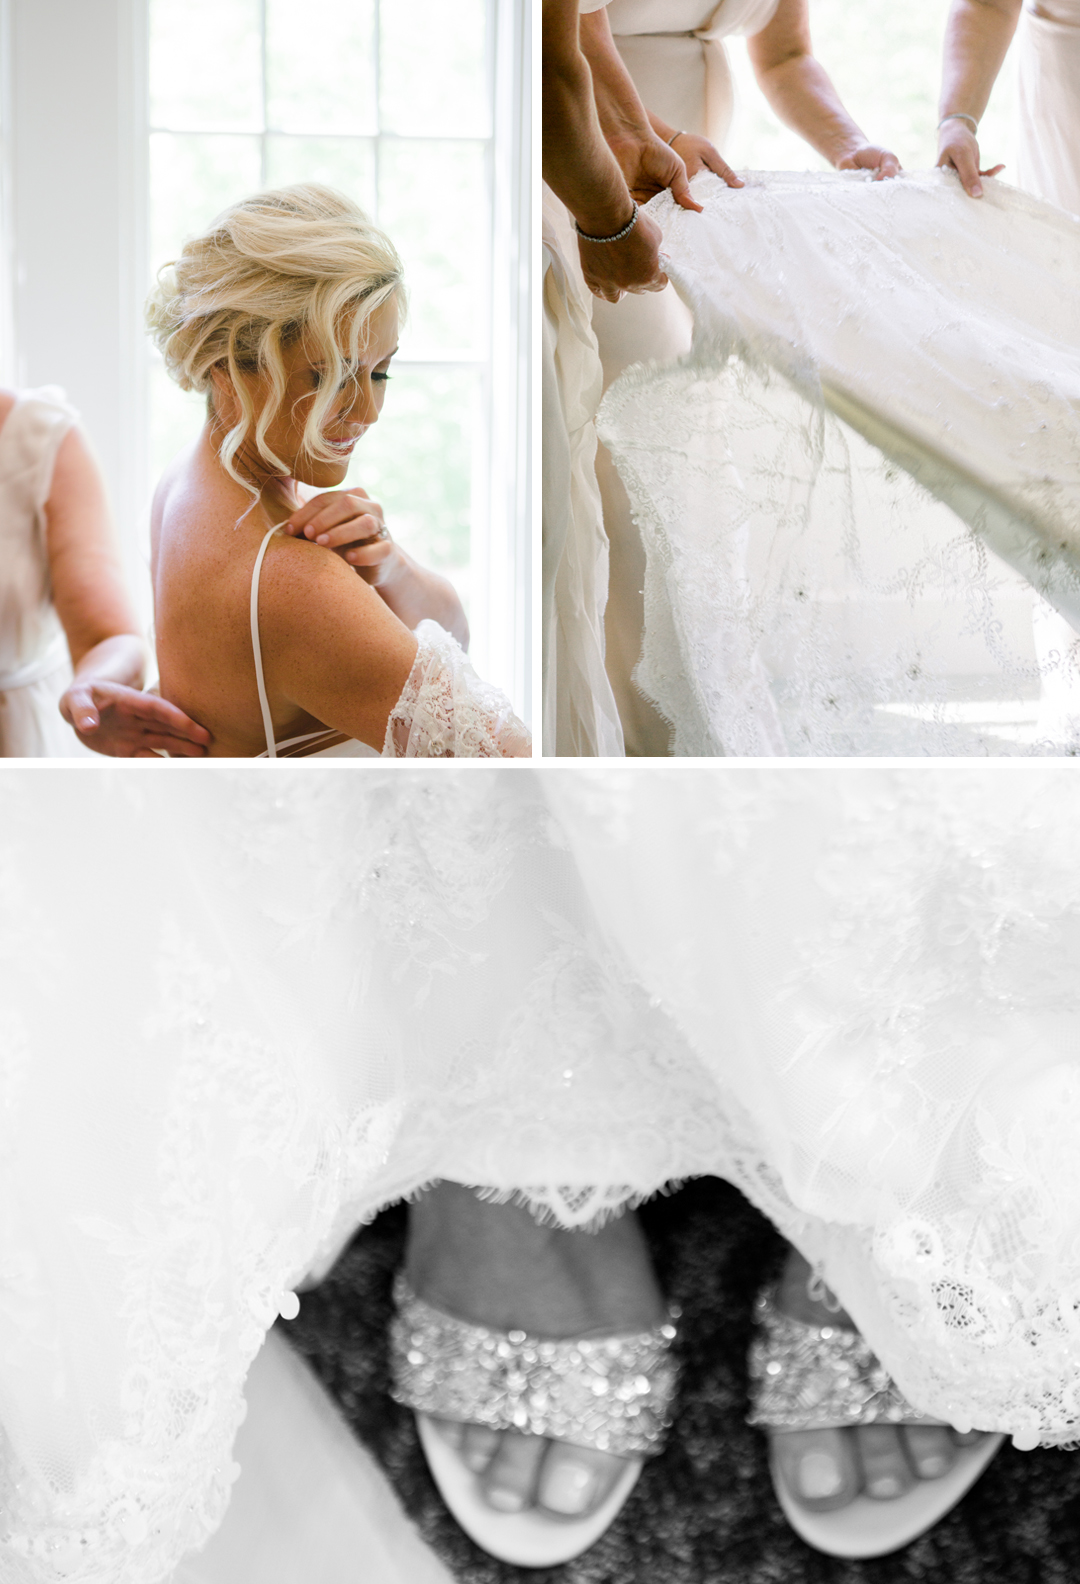 Margie_John_Wedding_Mo_Davis_Photography2.jpg